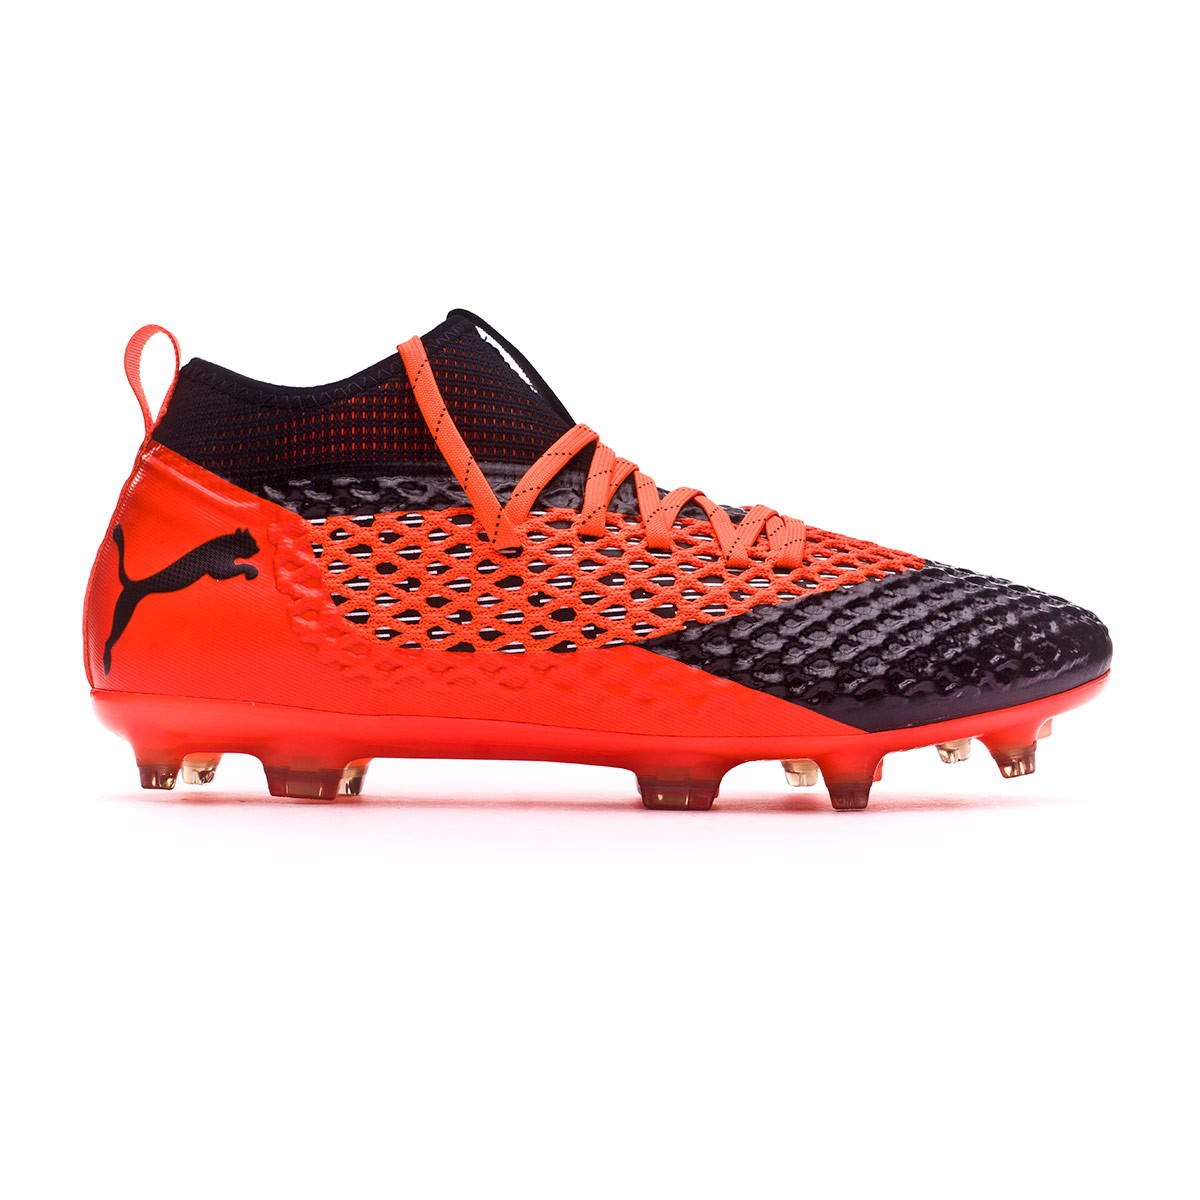 5e9b9c2911d9 Boot Puma Future 2.2 Netfit FG AG Puma black-Shocking orange - Leaked soccer